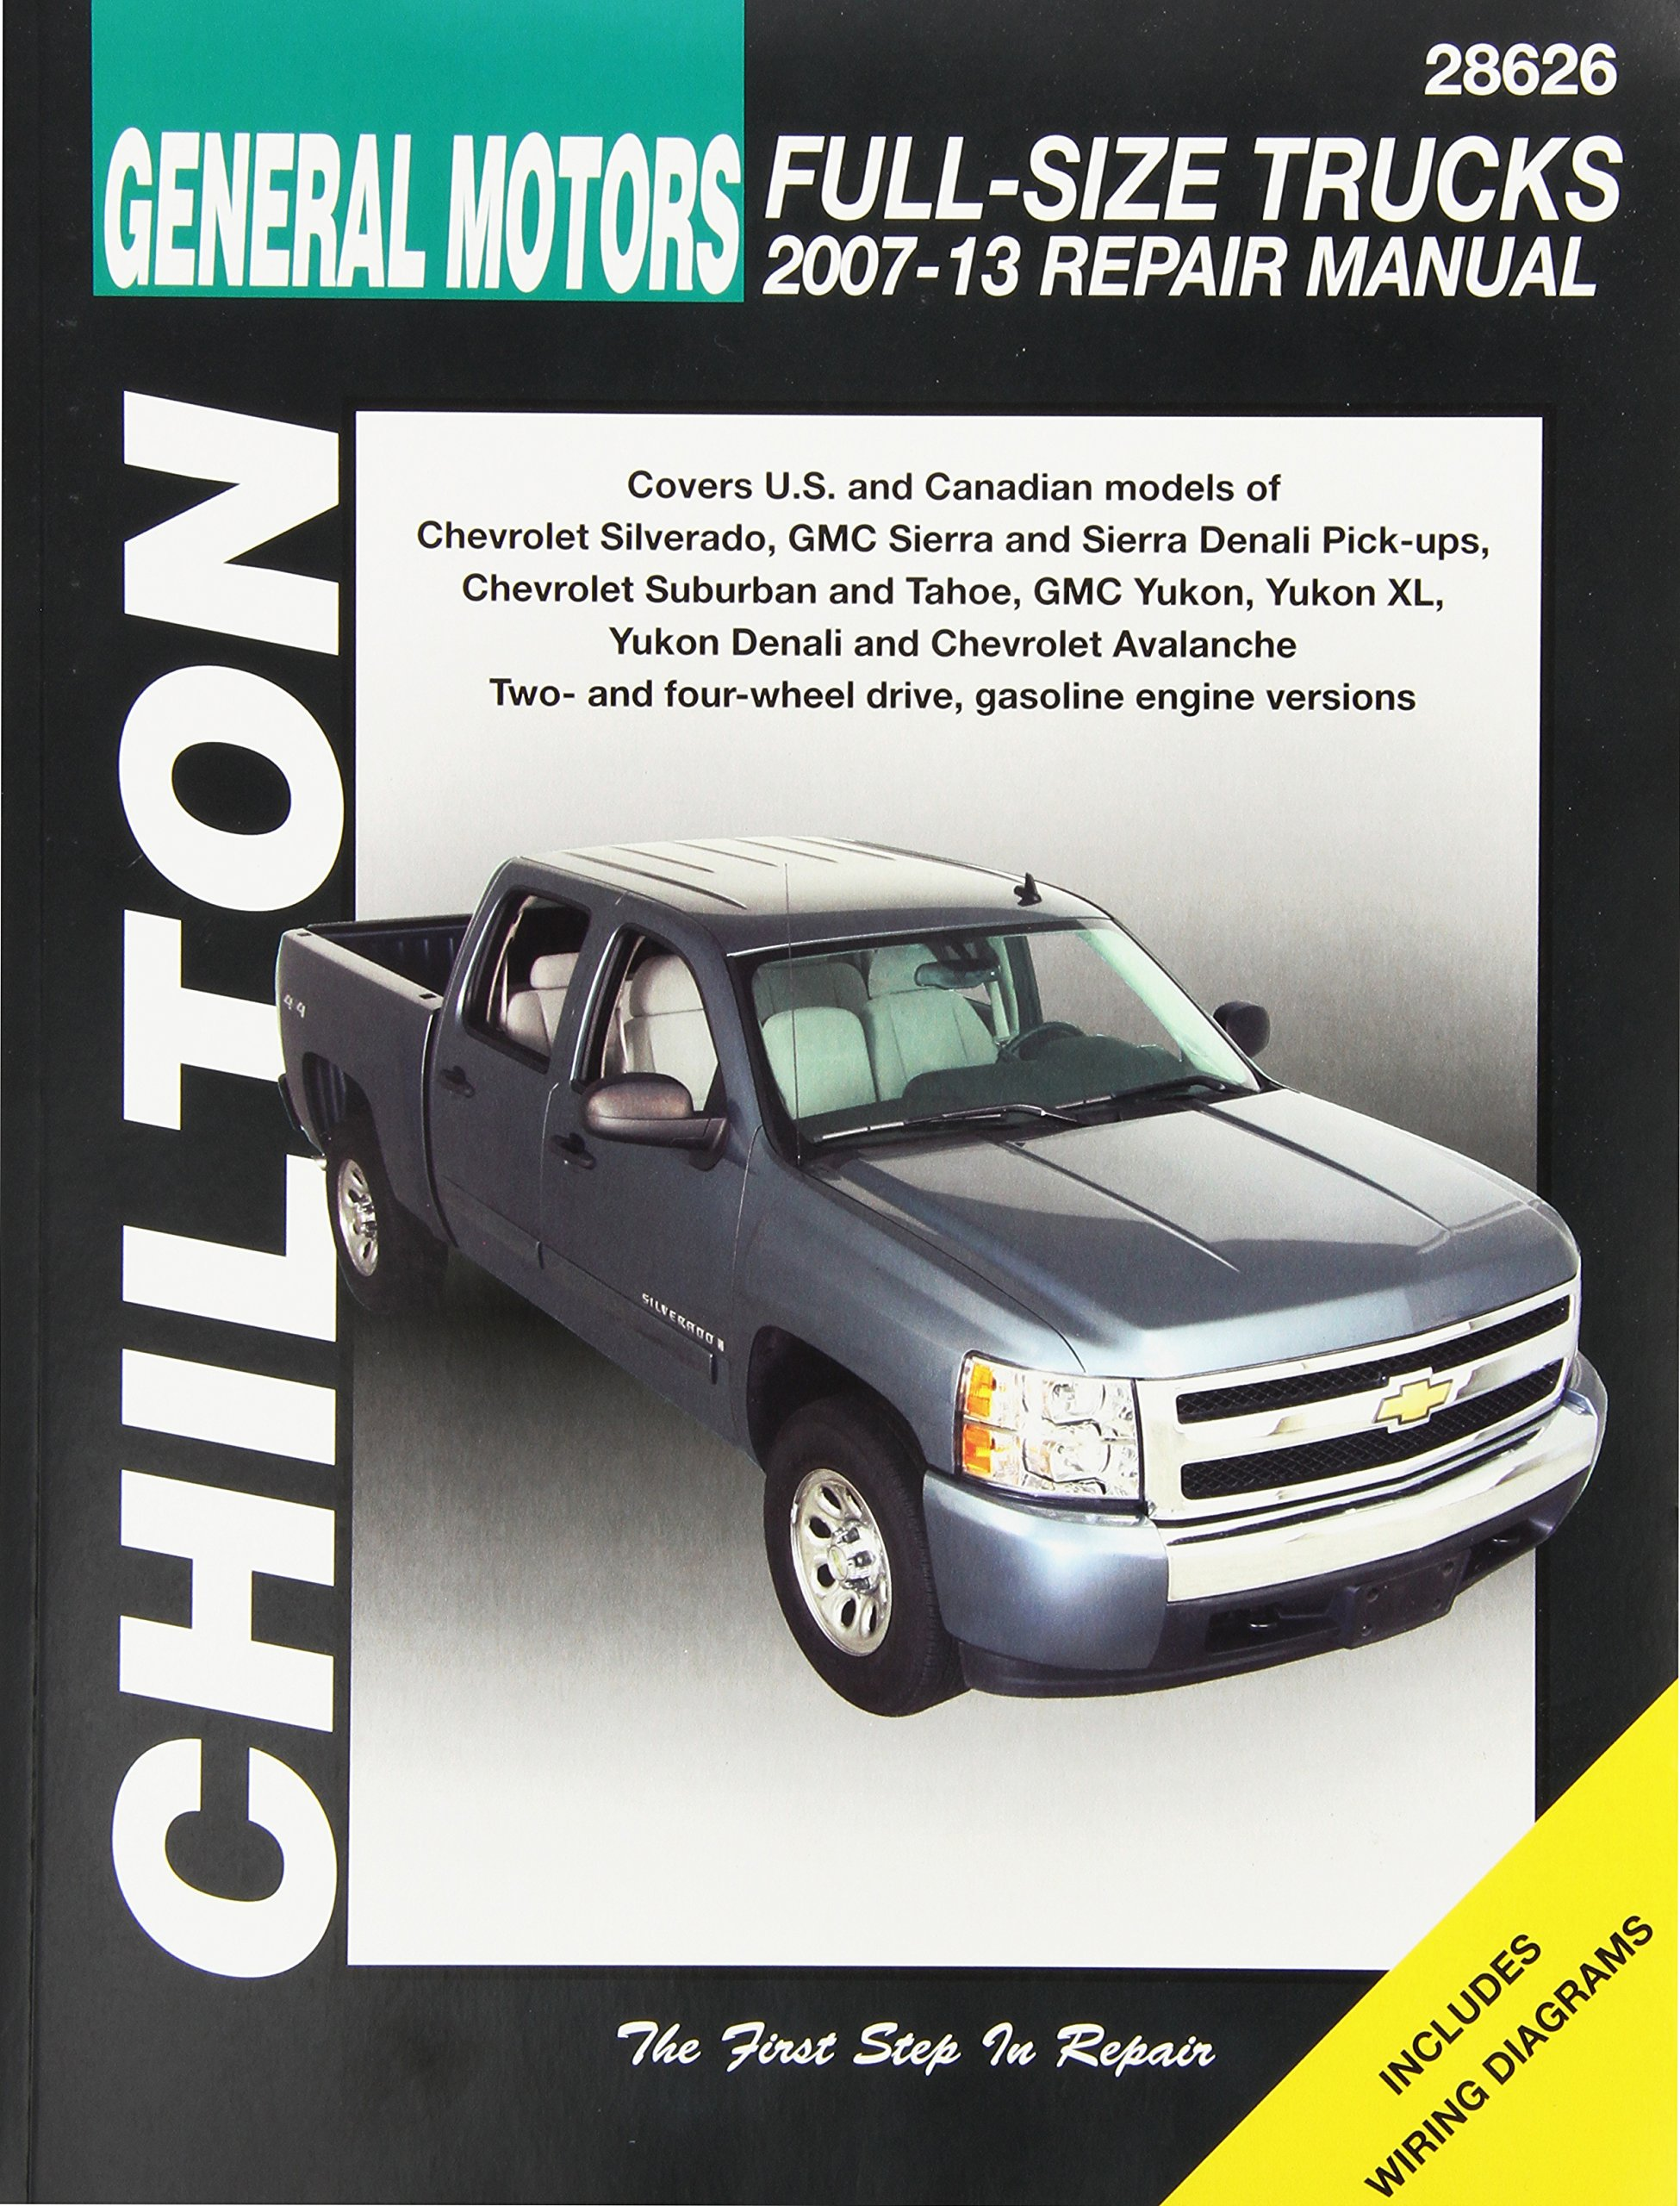 amazon com gm full size trucks chilton repair manual 2007 2012 rh amazon  com 2010 gmc sierra sle owners manual 2010 gmc sierra slt owners manual